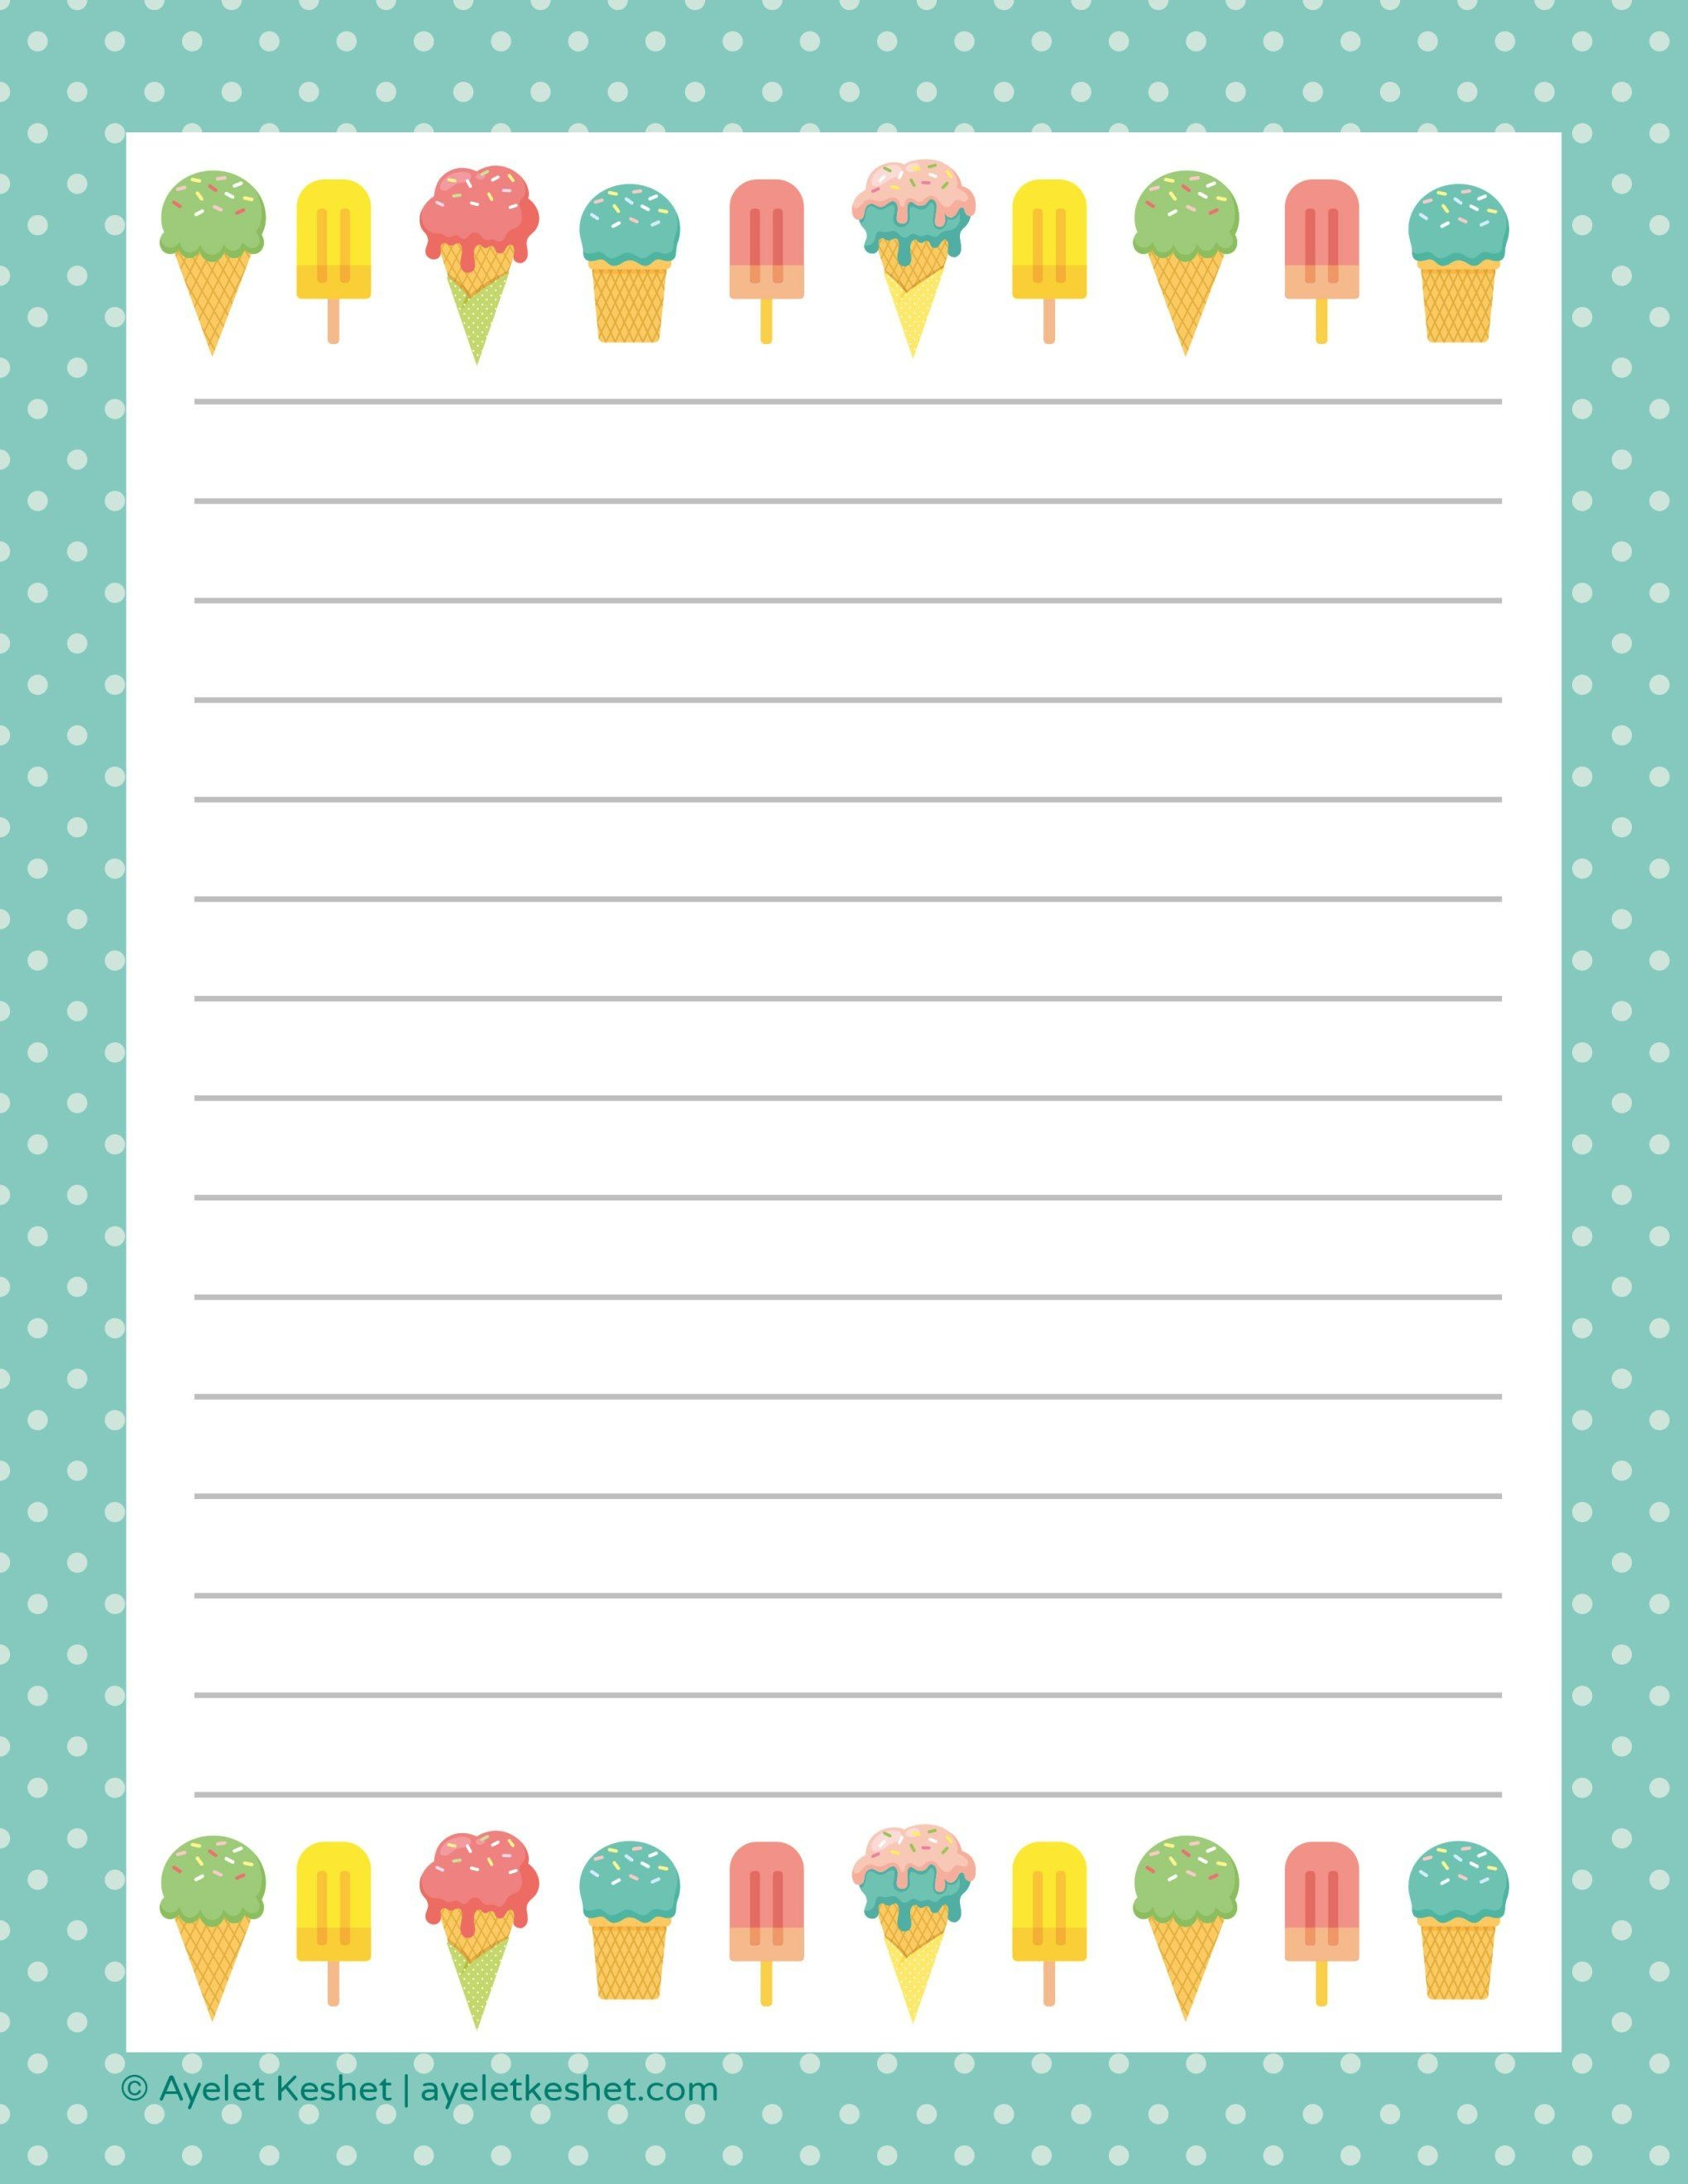 Free Printable Letter Paper | Printables To Go | Free Printable - Free Printable Paper